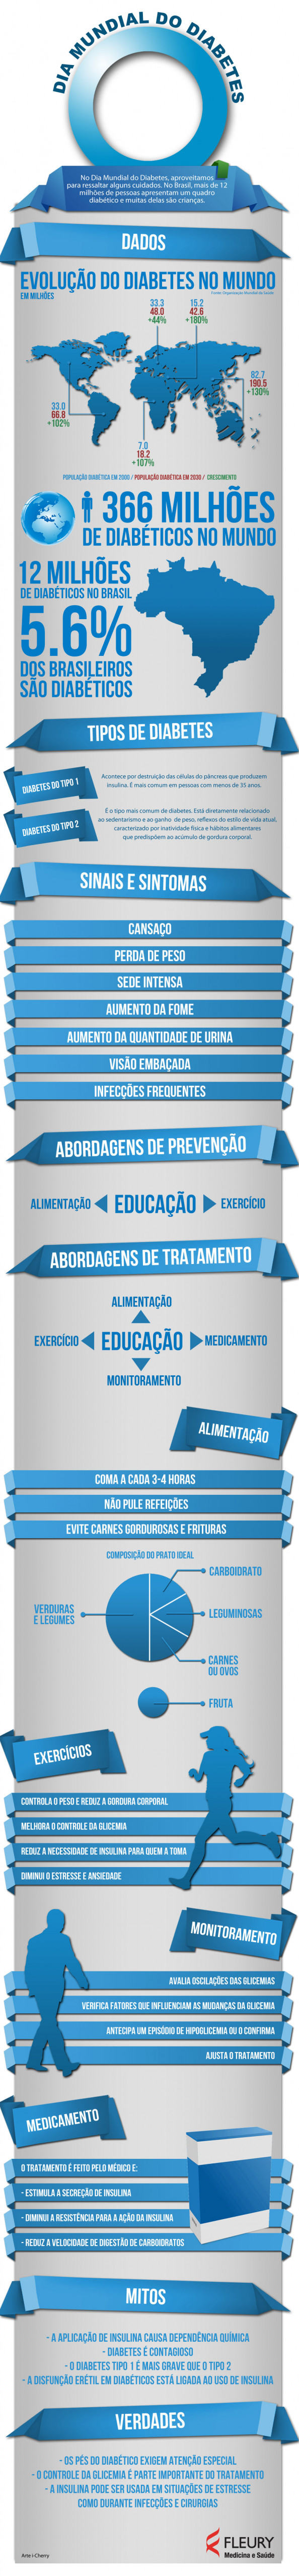 Dia Mundia do Diabetes Infographic